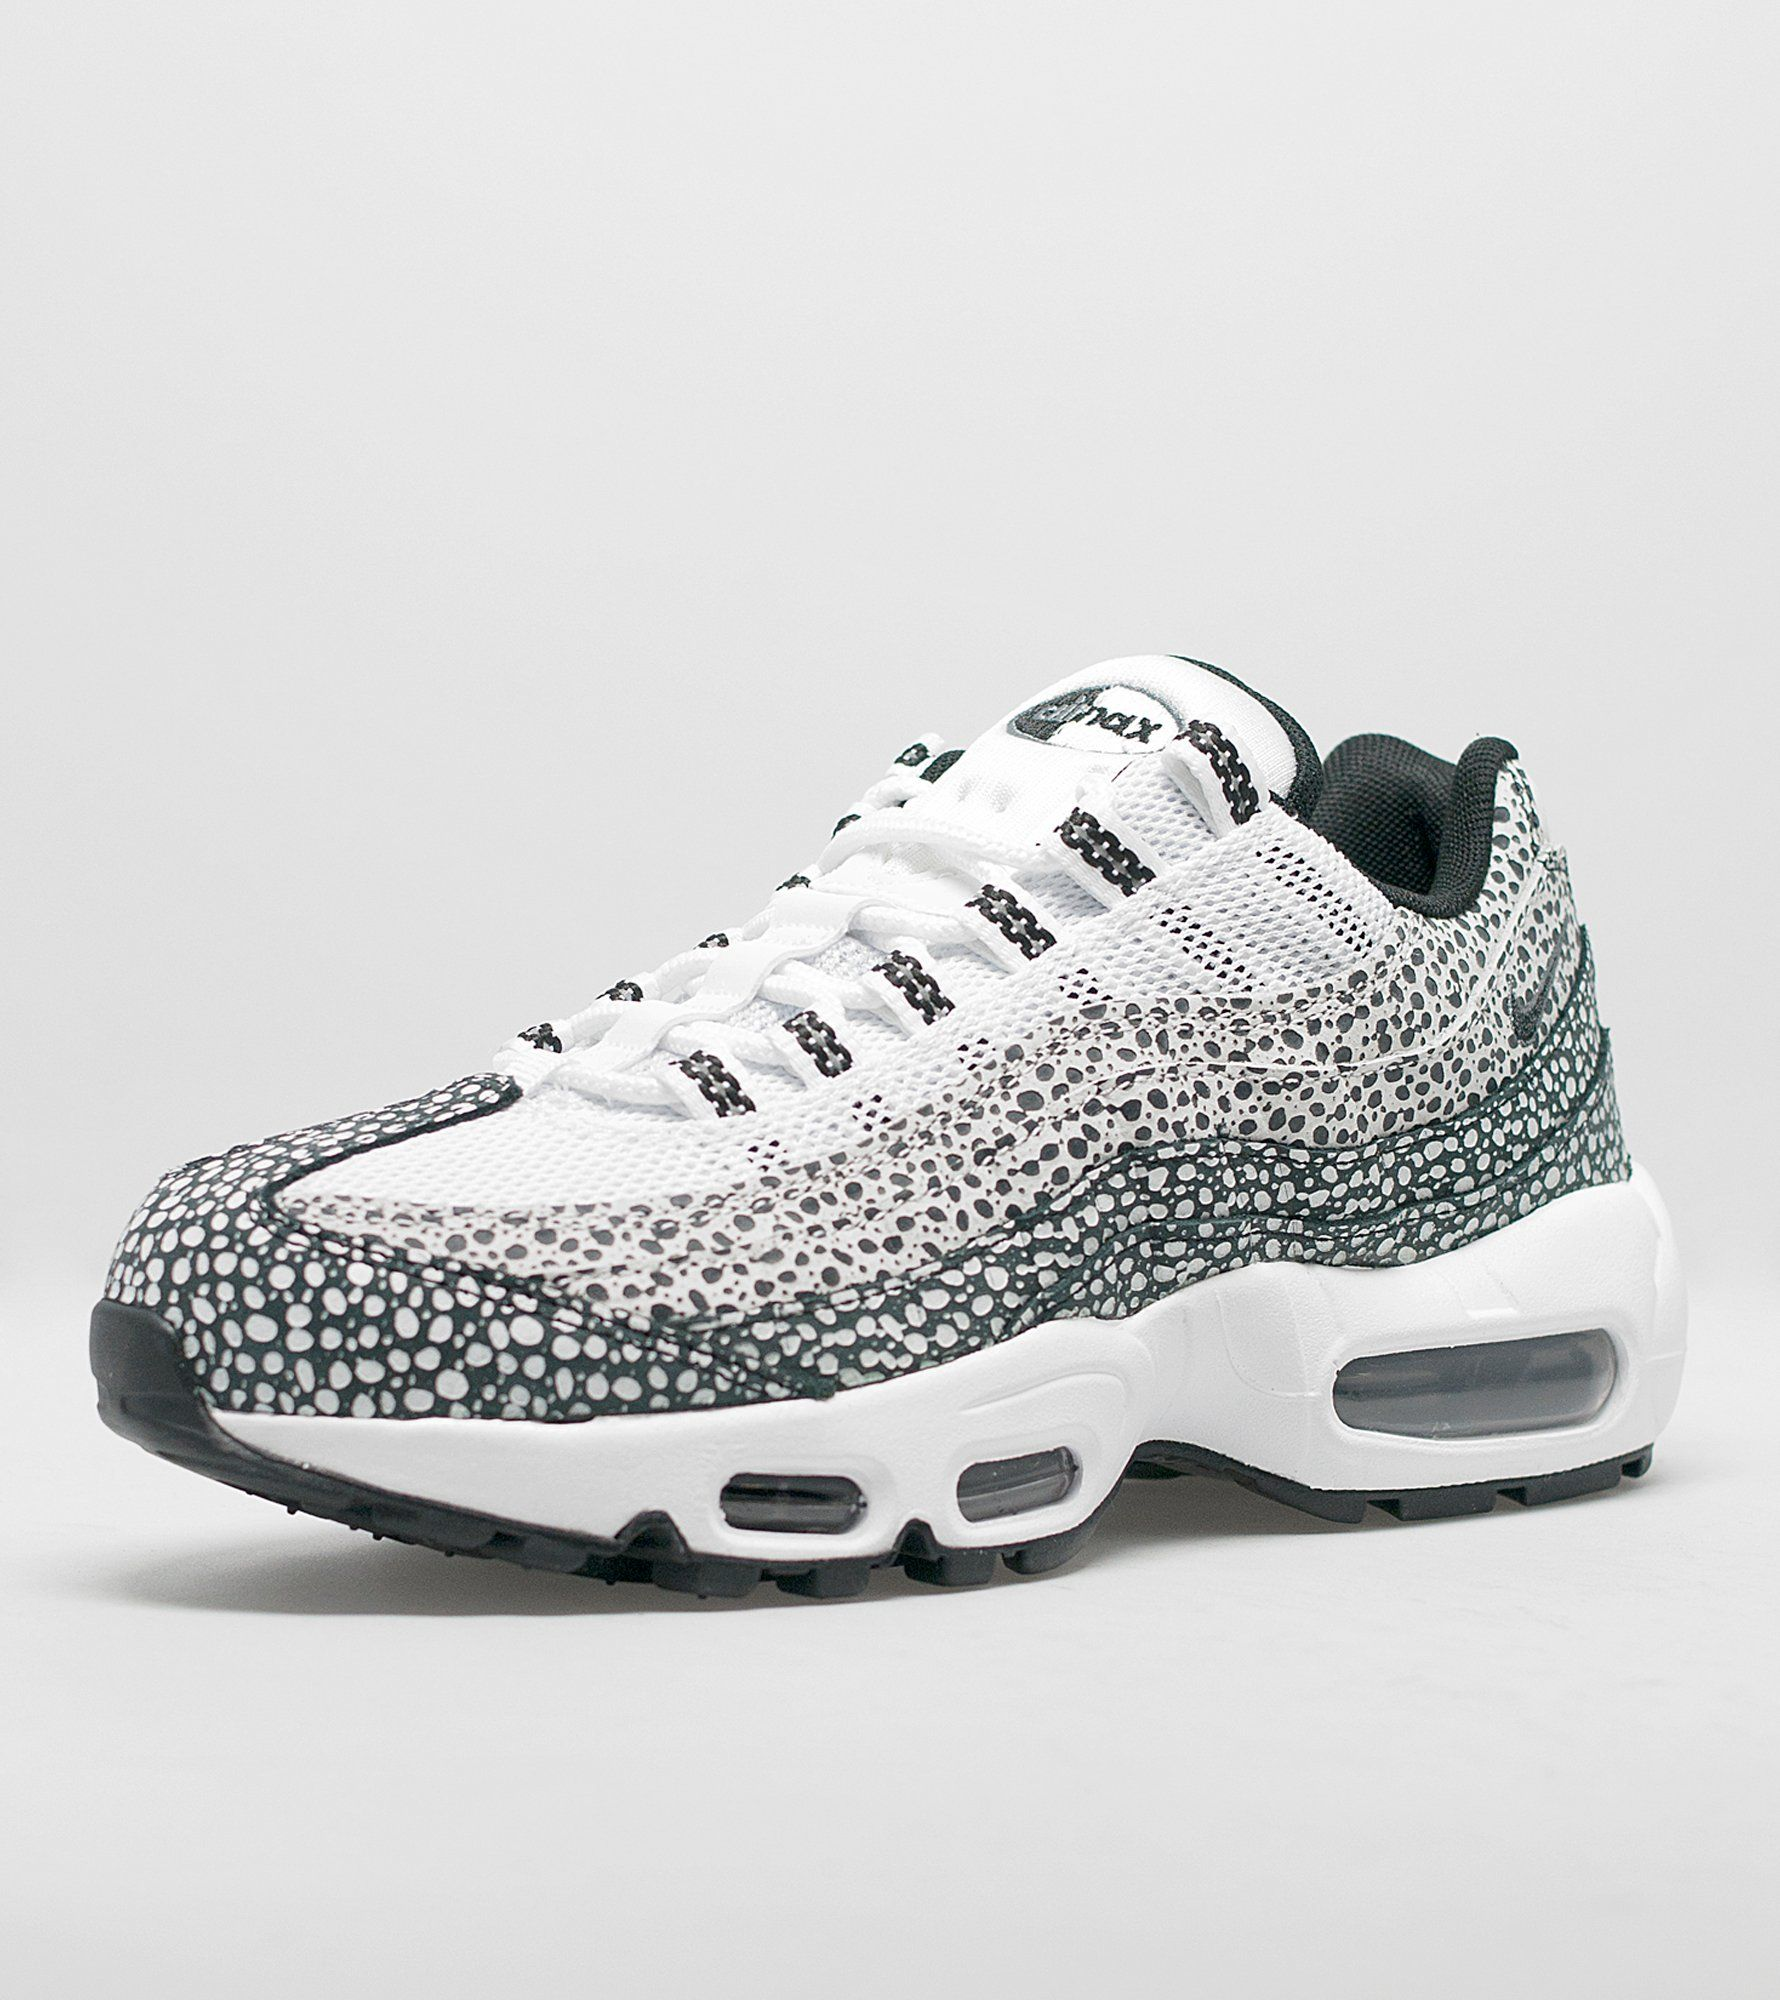 nike air max 95 safari women 39 s size. Black Bedroom Furniture Sets. Home Design Ideas